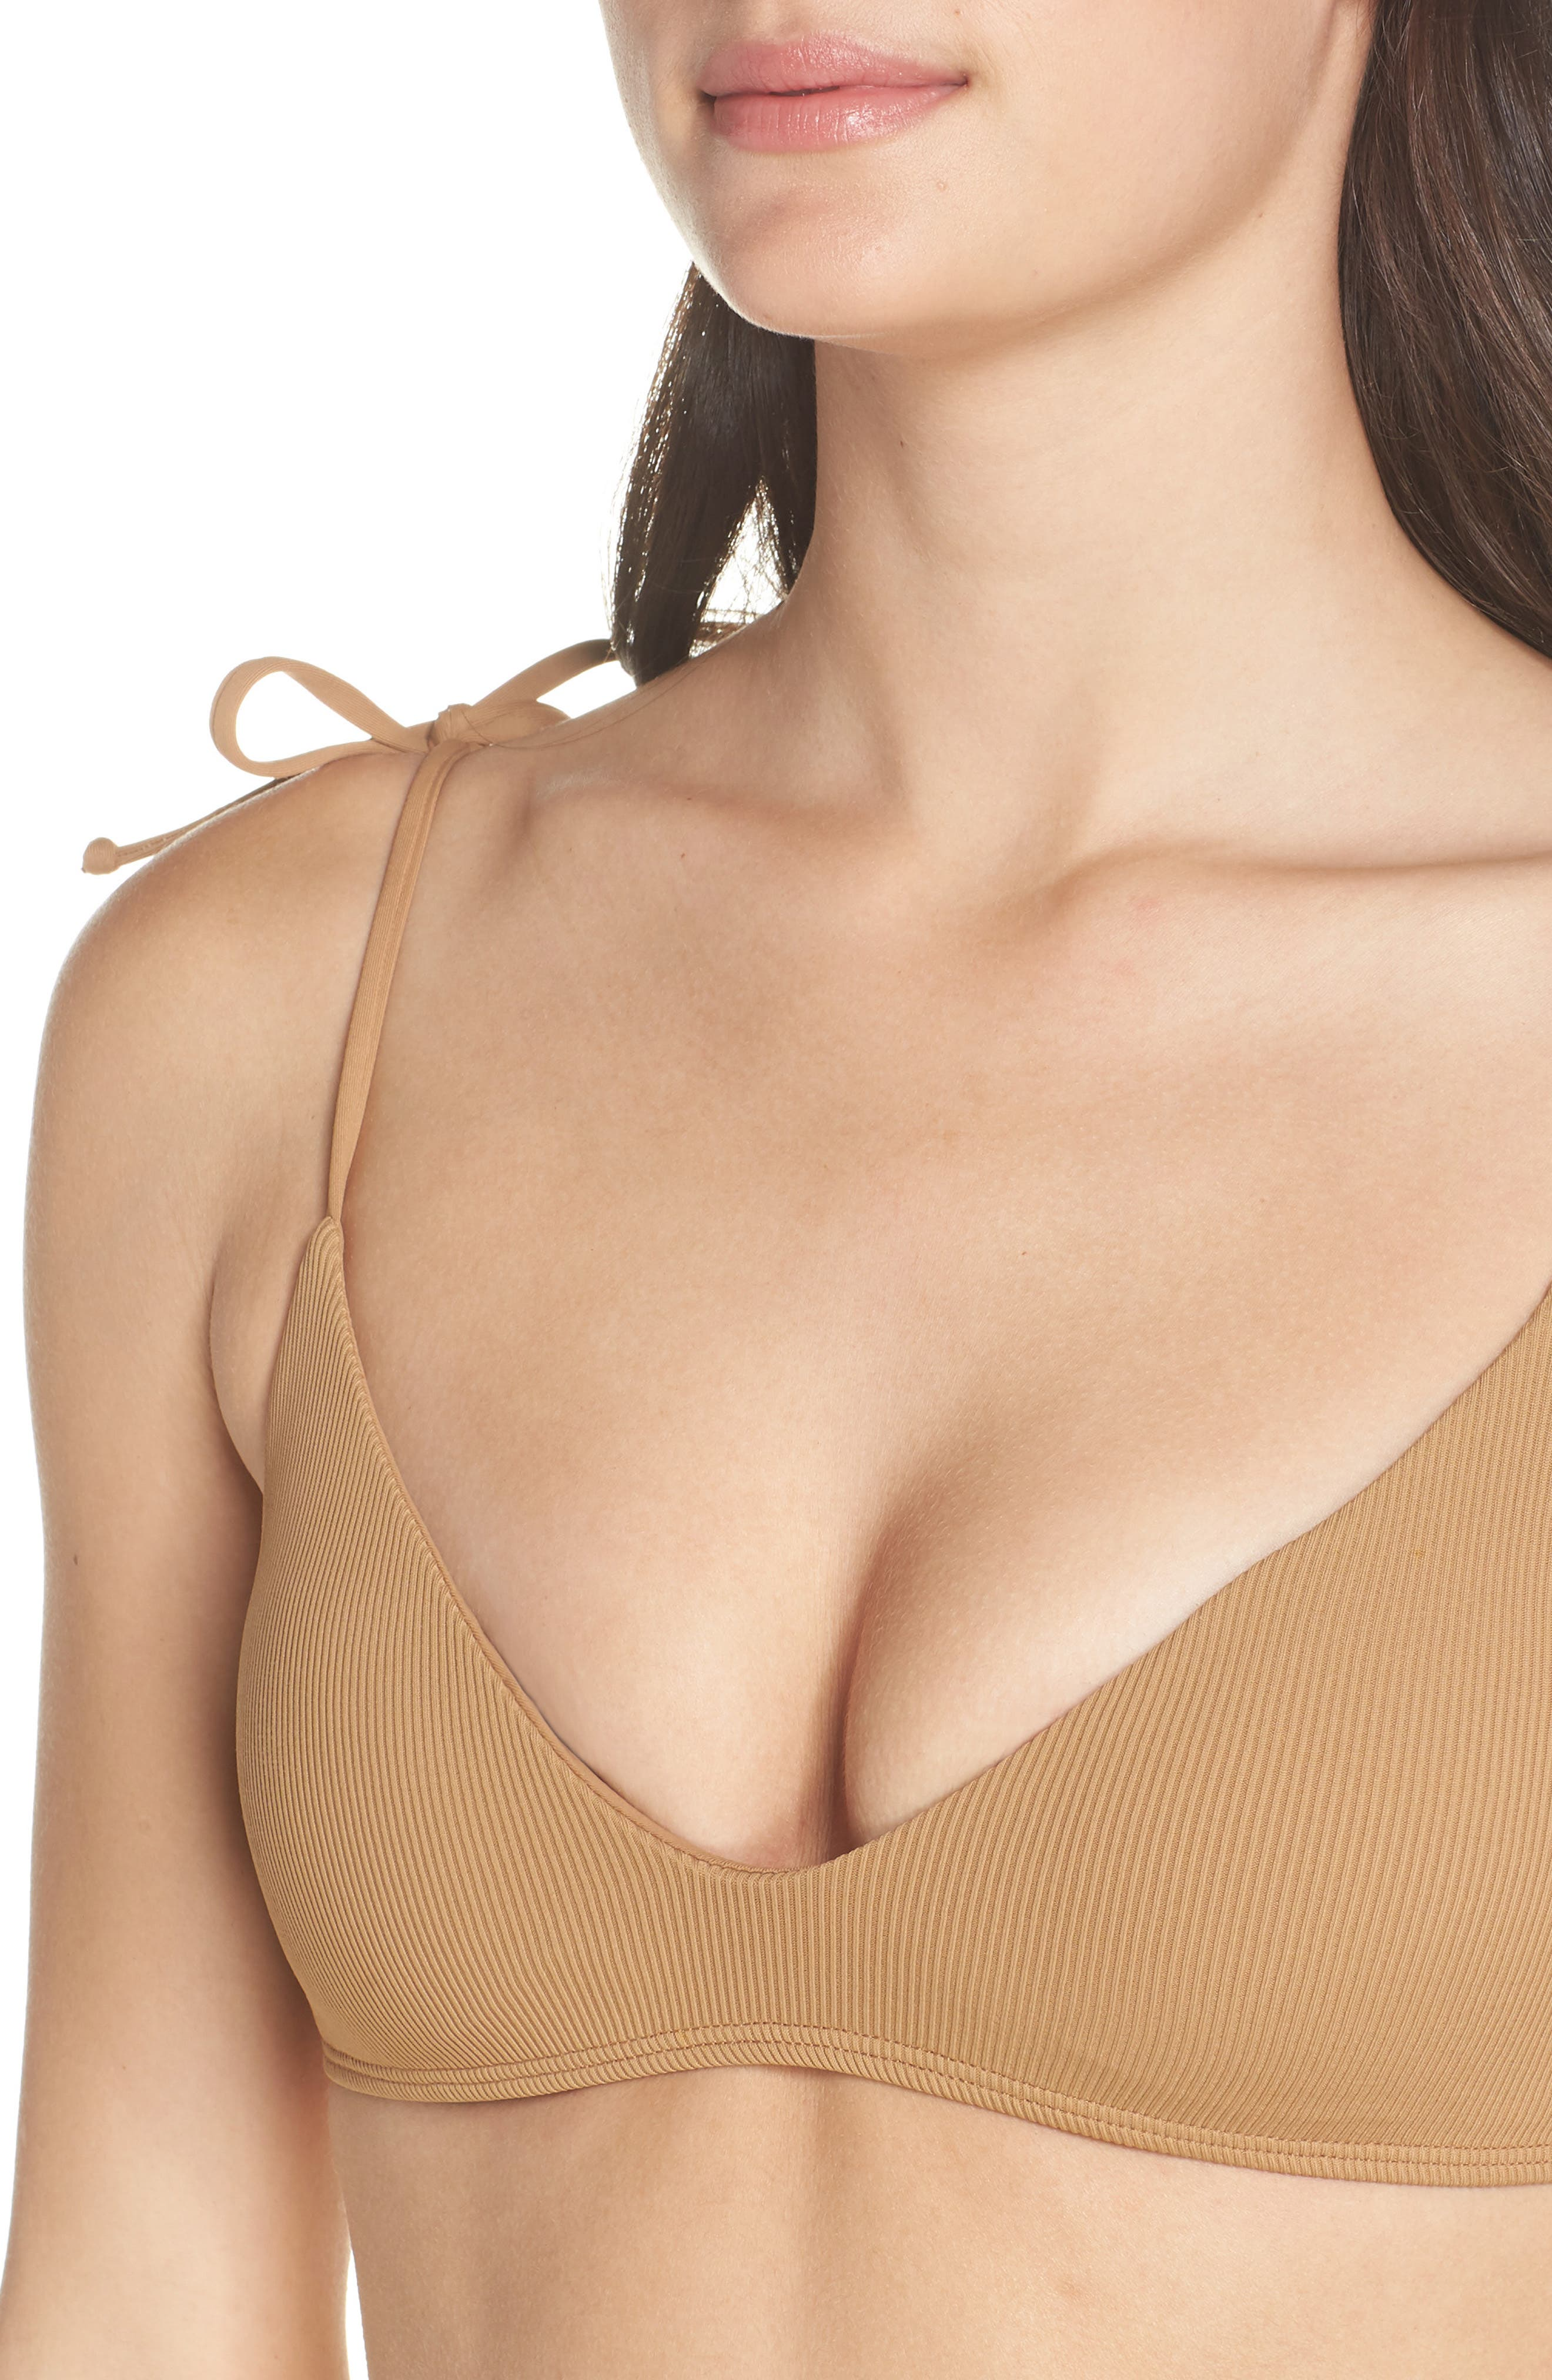 Daisy Bikini Top,                             Alternate thumbnail 4, color,                             CAMEL